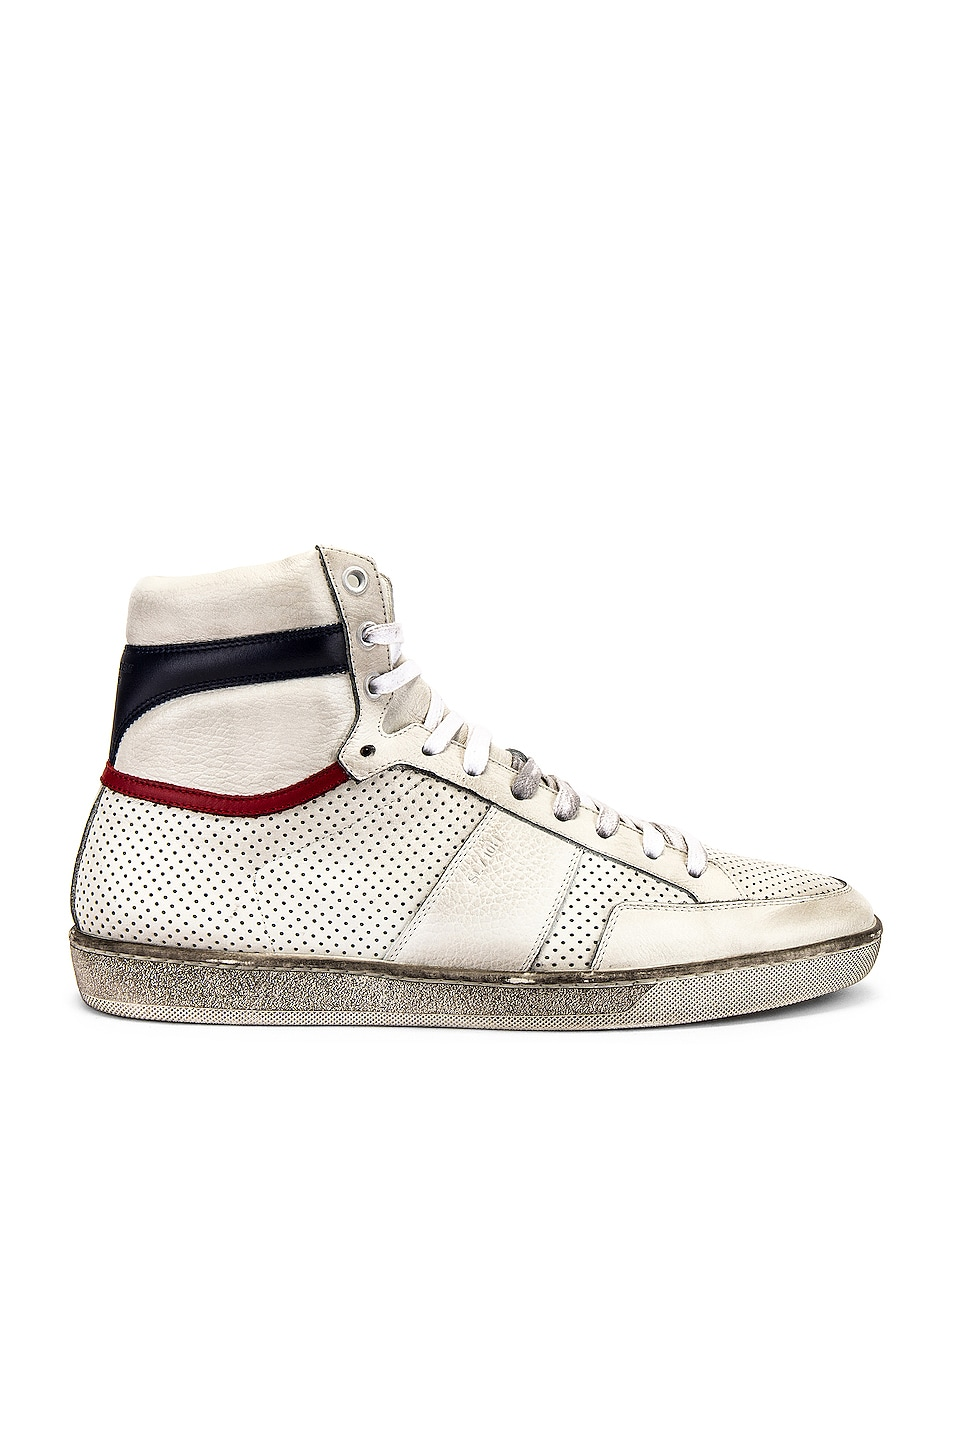 Image 2 of Saint Laurent Court Classic High Top Sneakers in White